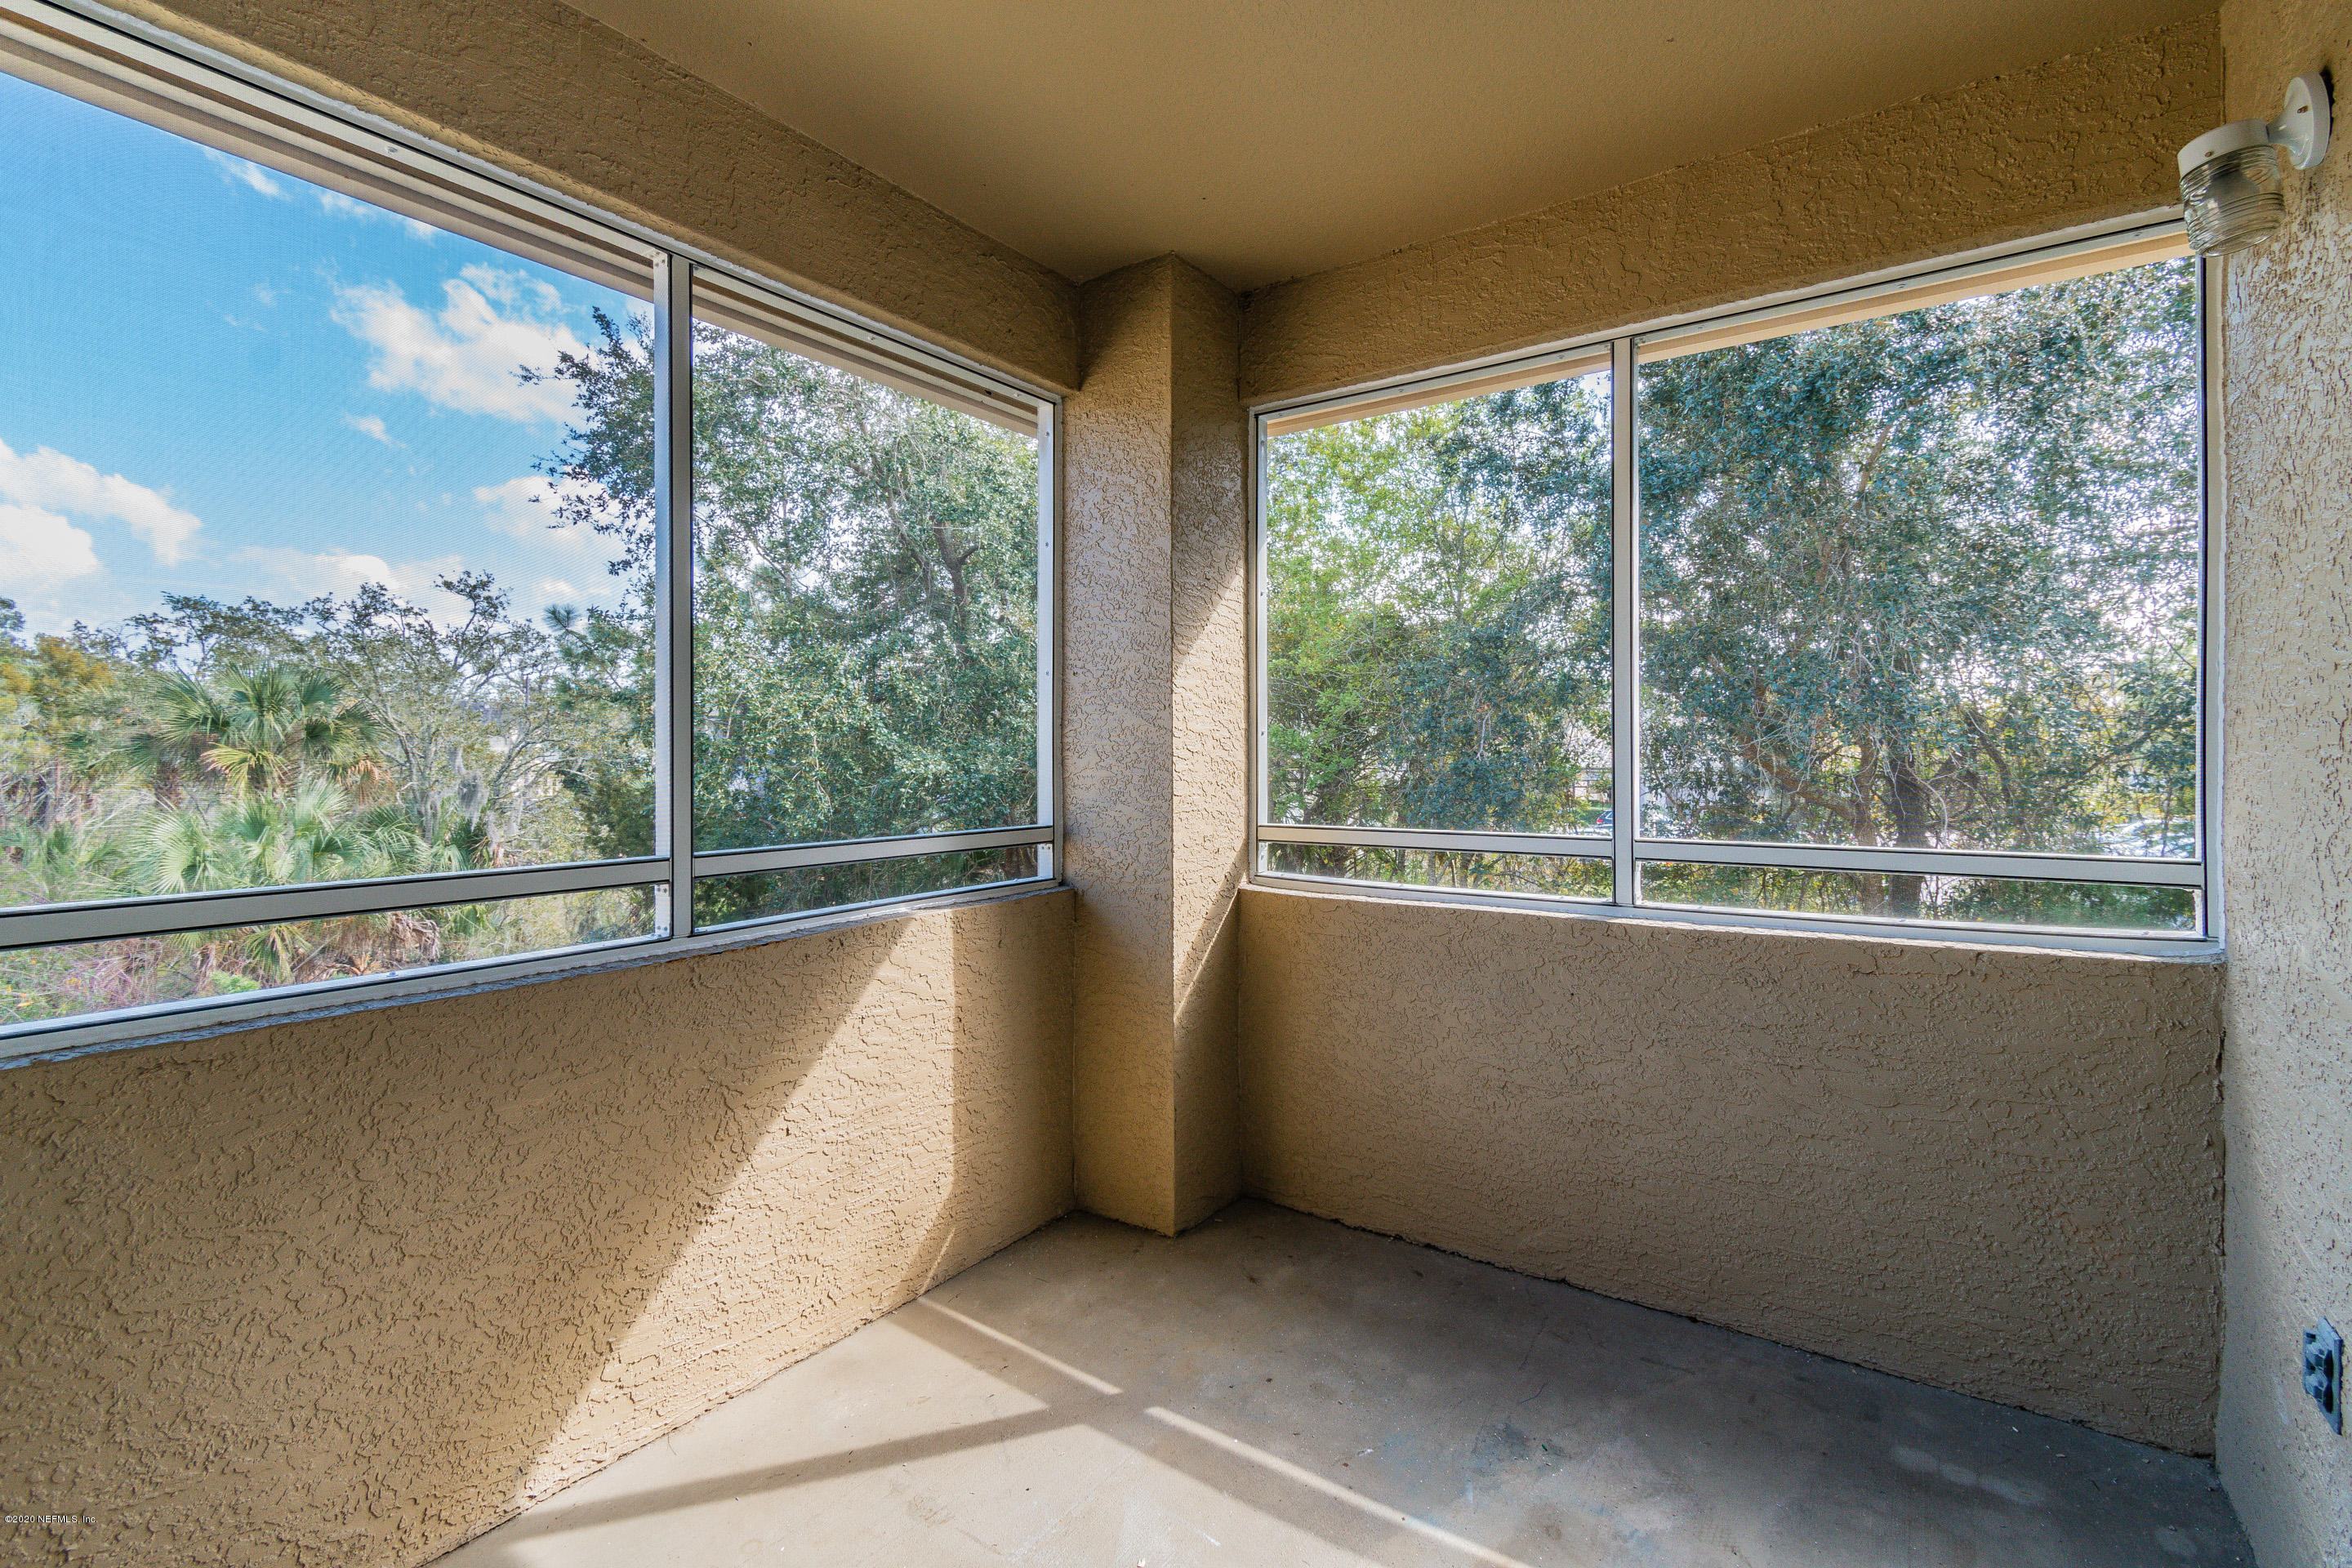 1655 THE GREENS, JACKSONVILLE BEACH, FLORIDA 32250, 2 Bedrooms Bedrooms, ,2 BathroomsBathrooms,Condo,For sale,THE GREENS,1009118